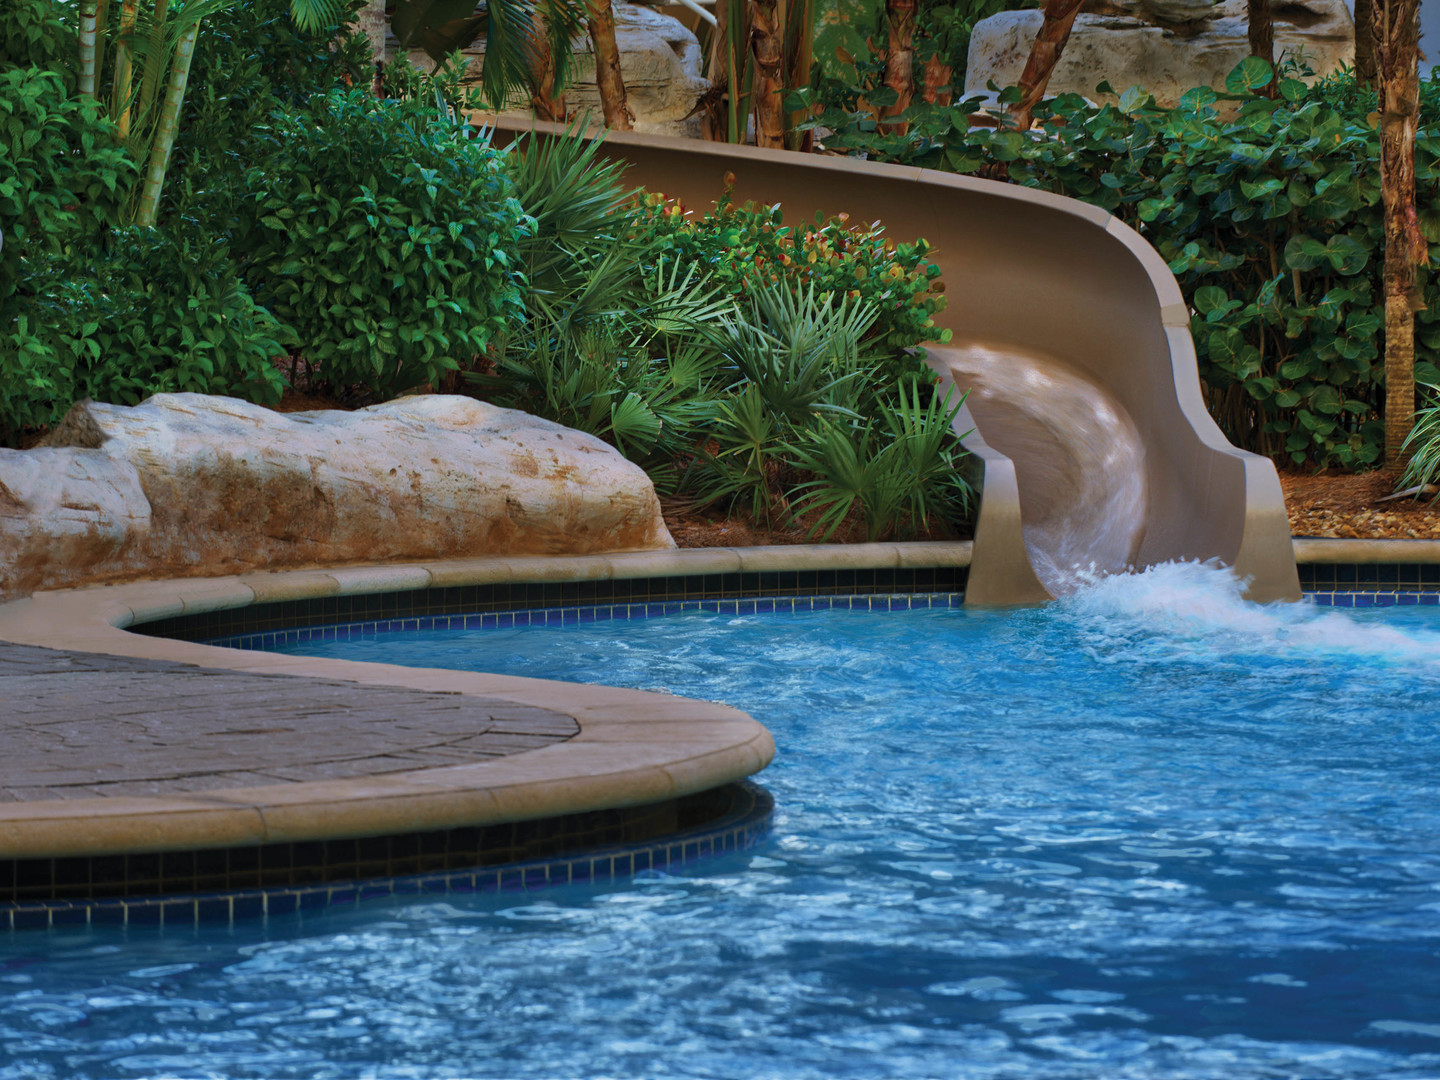 Marriott's Crystal Shores Grotto Pool and Slide. Marriott's Crystal Shores is located in Marco Island, Florida United States.